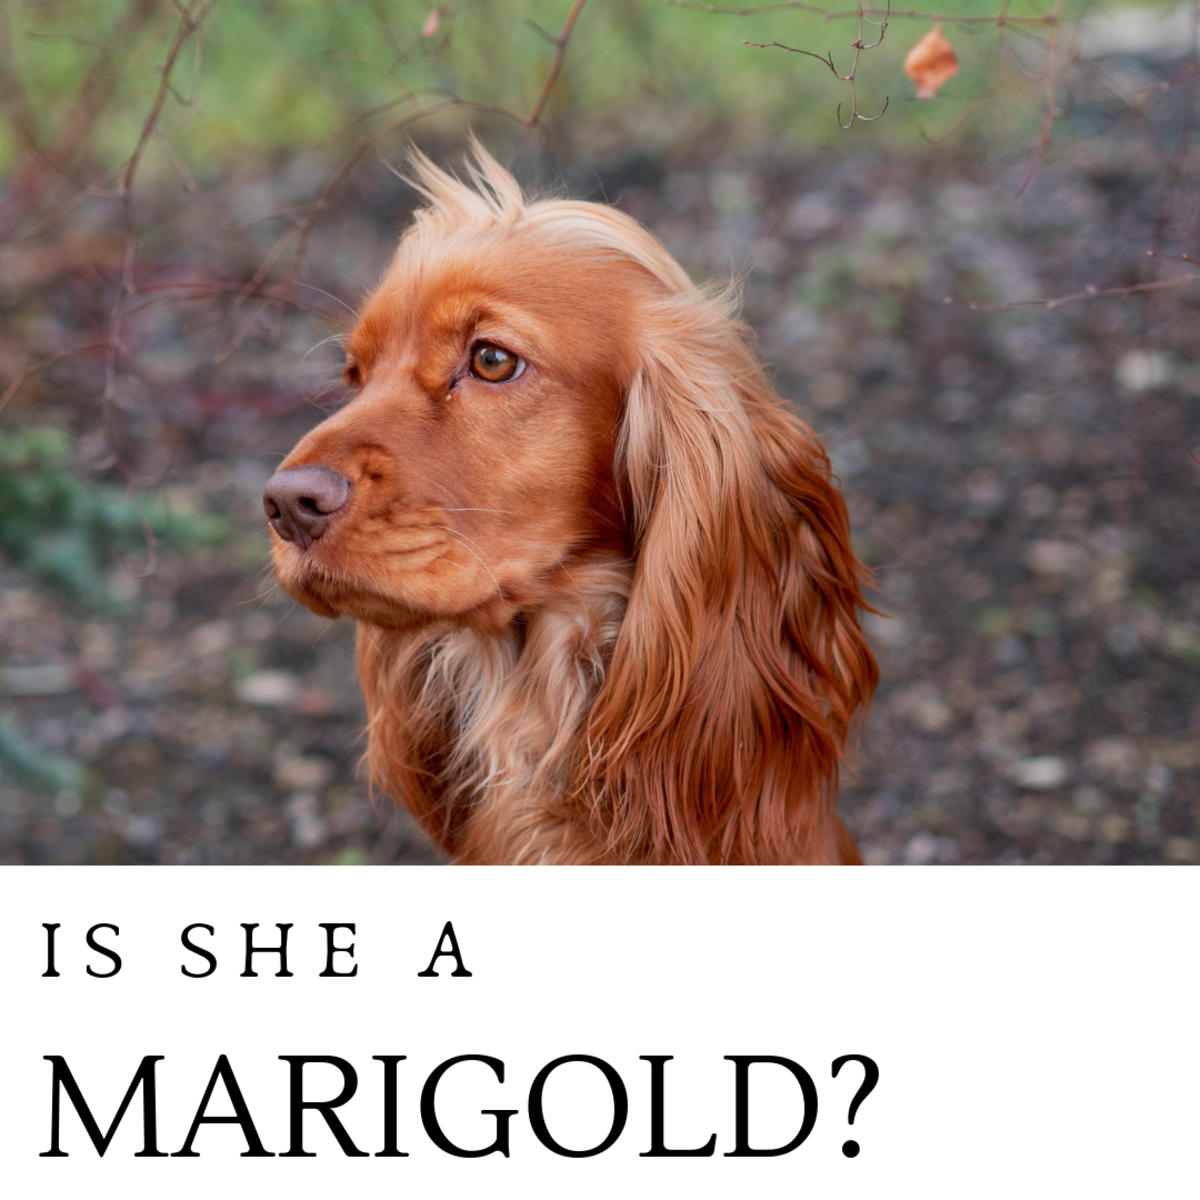 Is she a Marigold?